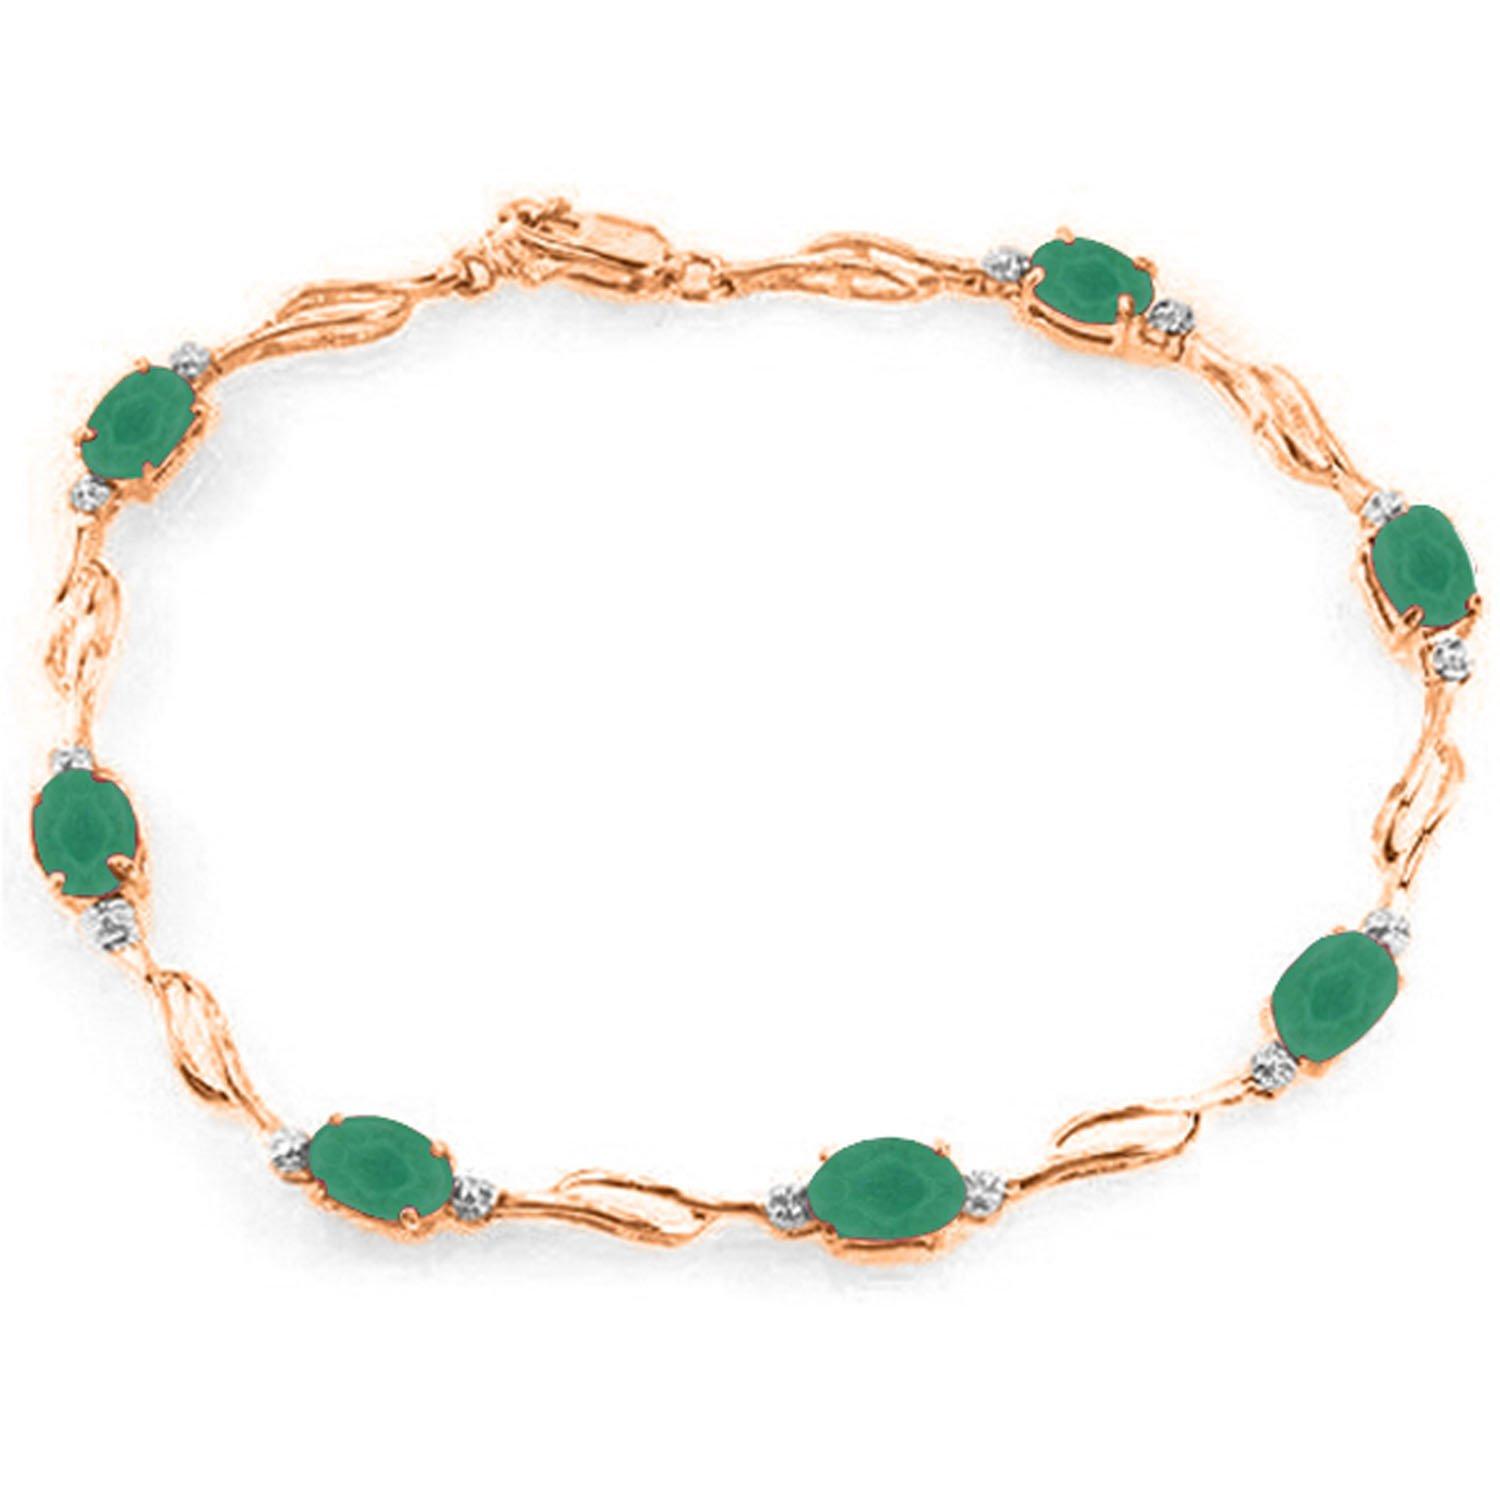 14K Solid Rose Gold Tennis Bracelet with Emeralds & Diamonds